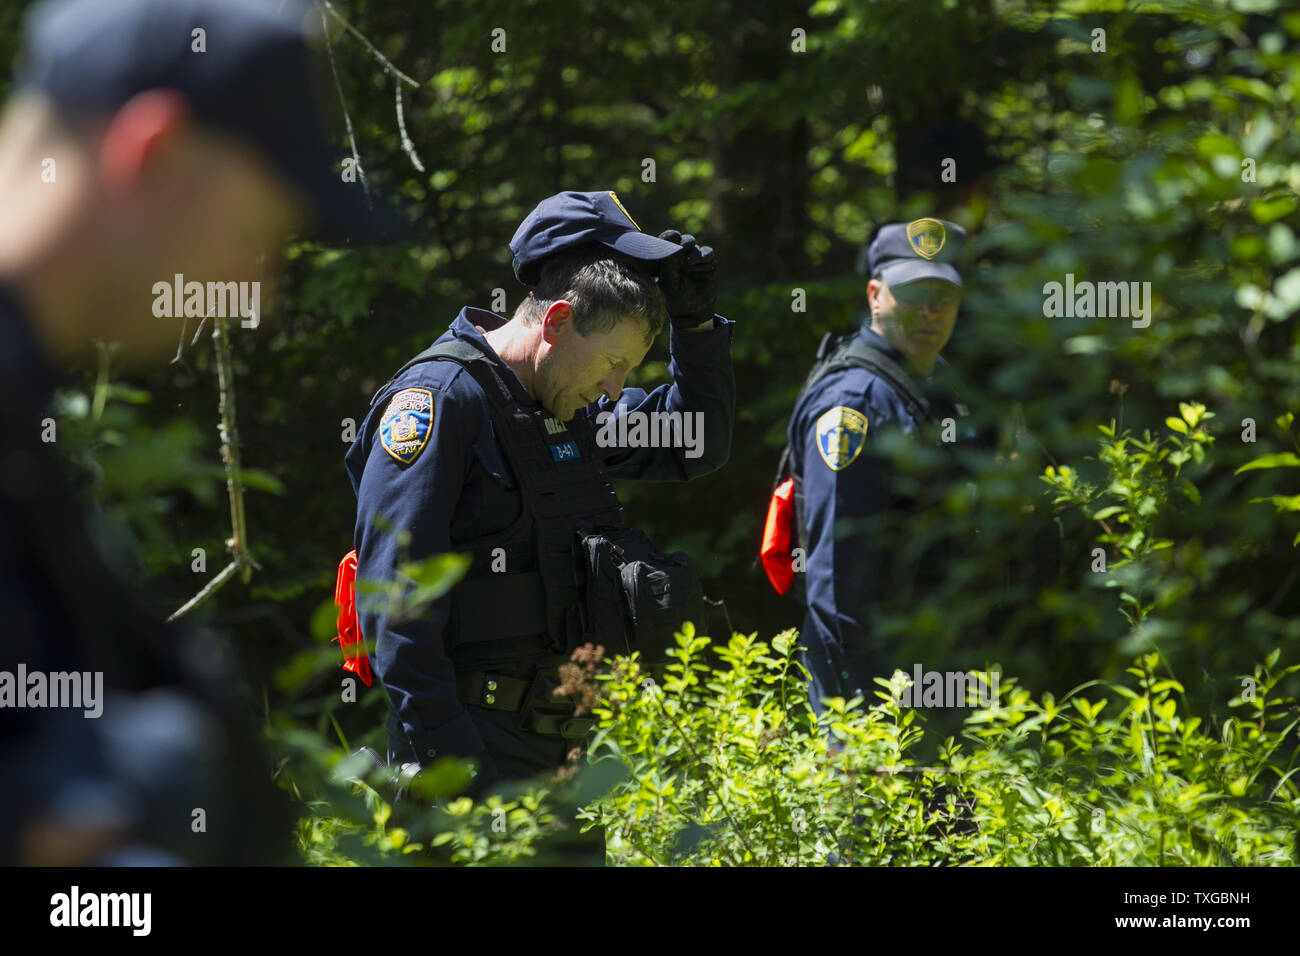 Law enforcement personnel search a wooded area in Mountain